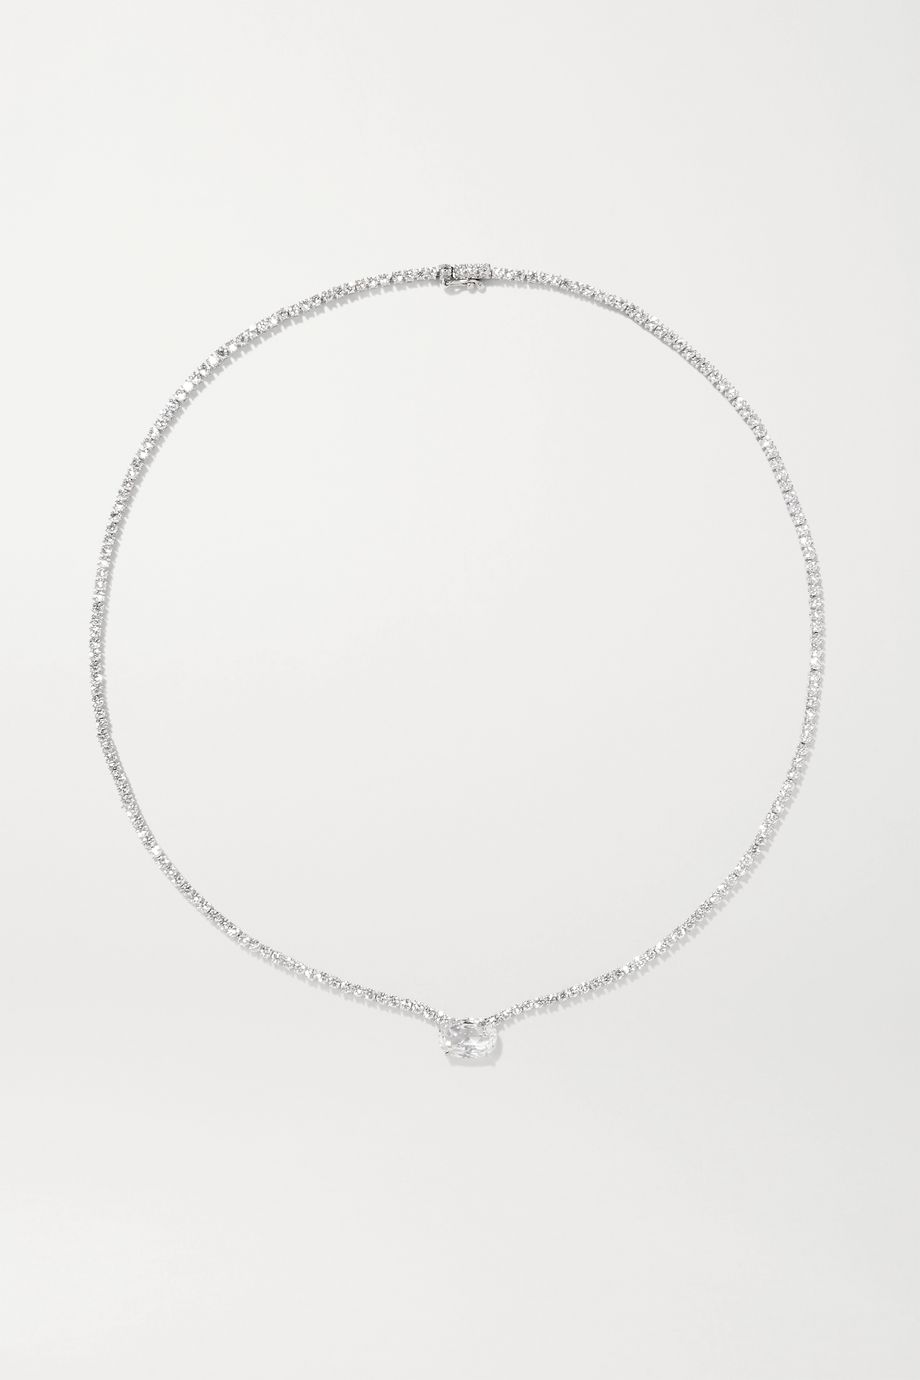 Anita Ko 18-karat white gold diamond choker